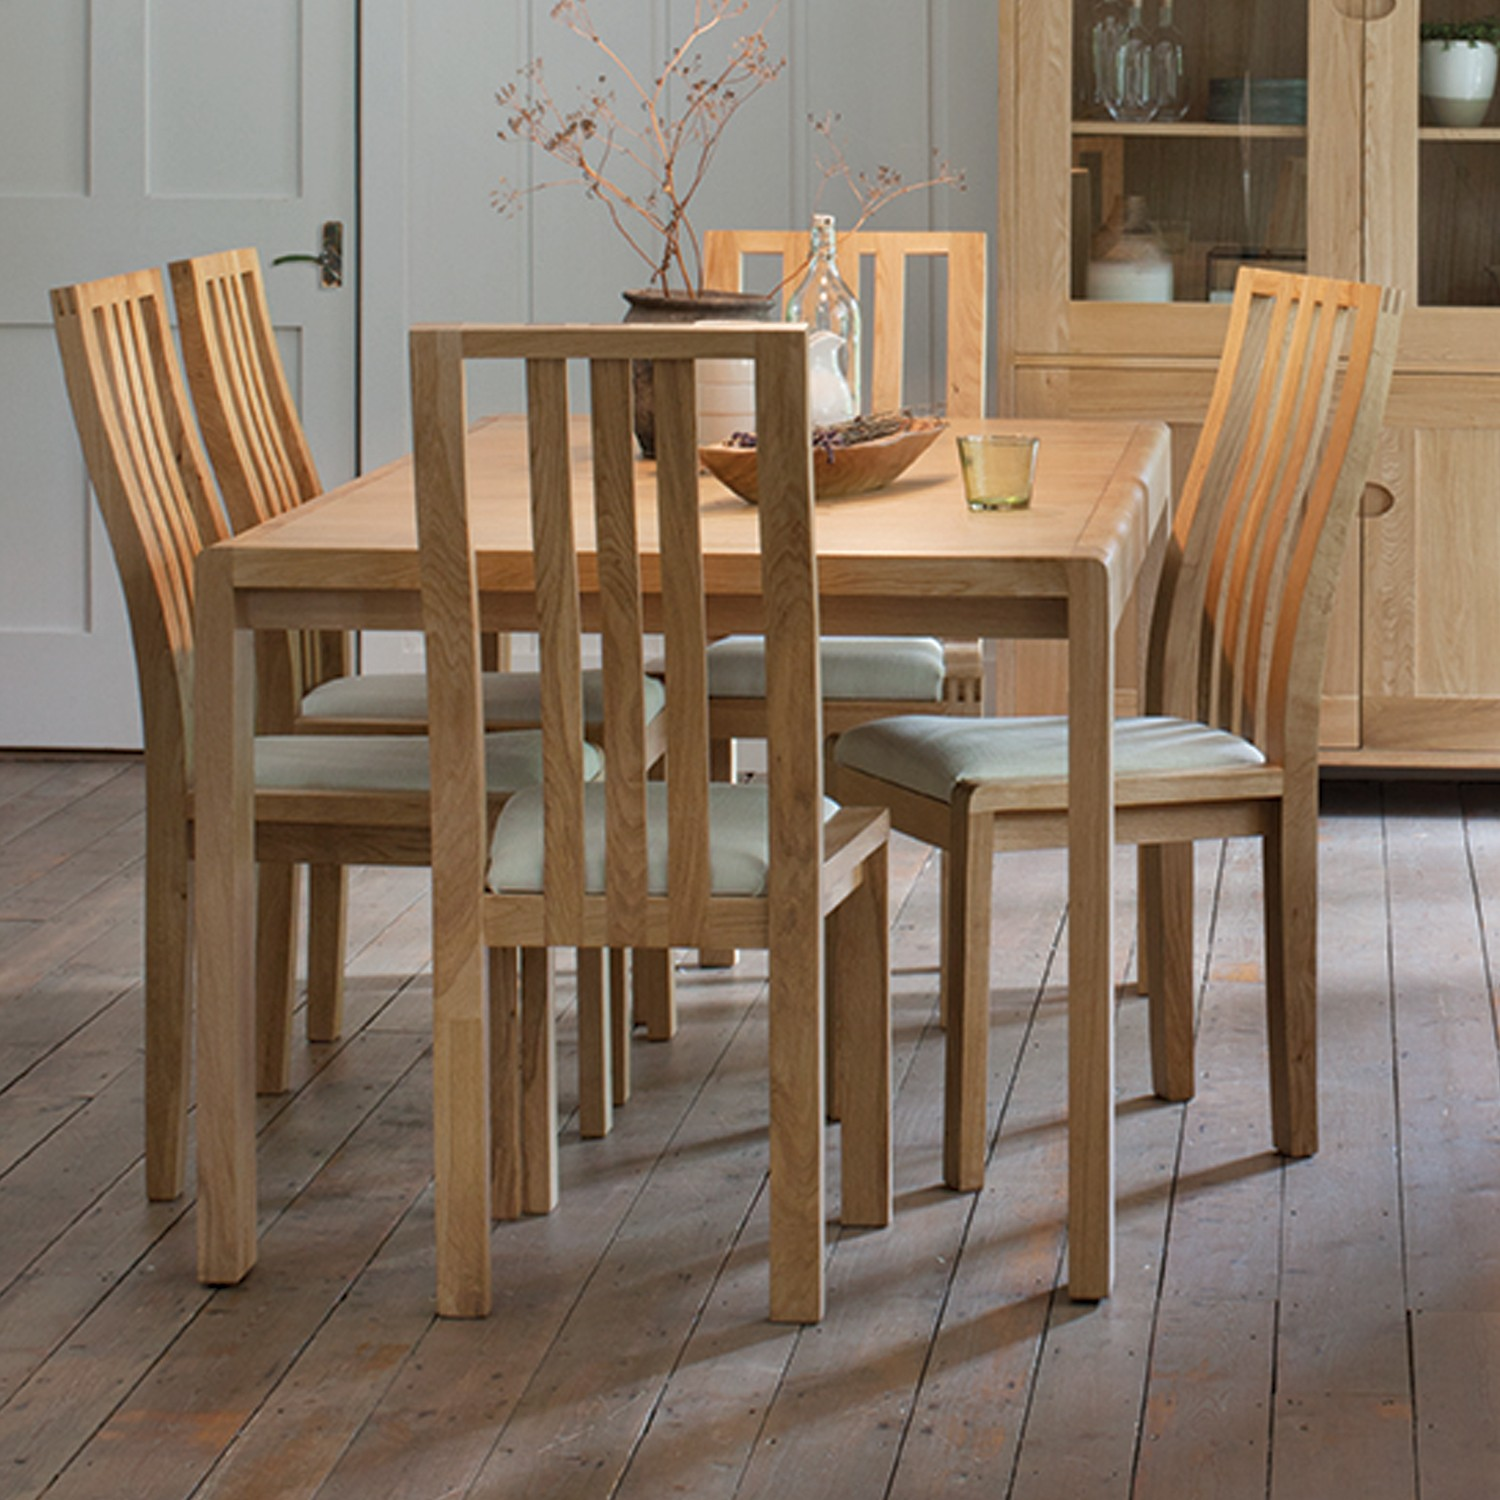 Dining Table 6 Chairs: Ercol Bosco Small Extending Table & 6 Chairs Dining Set